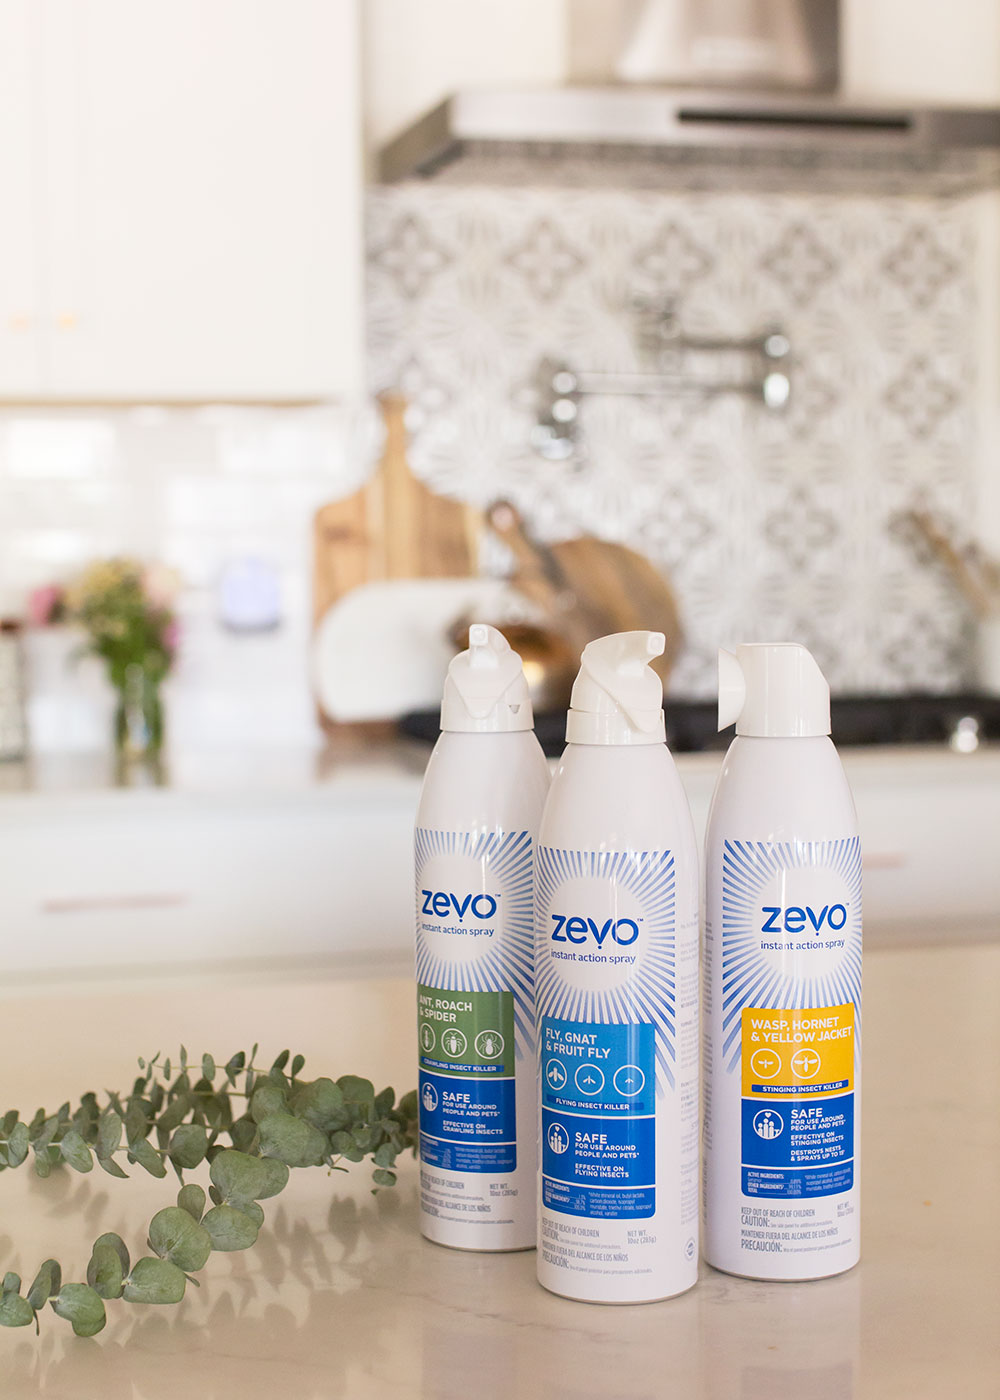 introducing the Zevo Total Home Protection line of Insect sprays and traps! | thelovedesignedlife.com #safehome #naturalproducts #nobugs #zevoinsect #ad